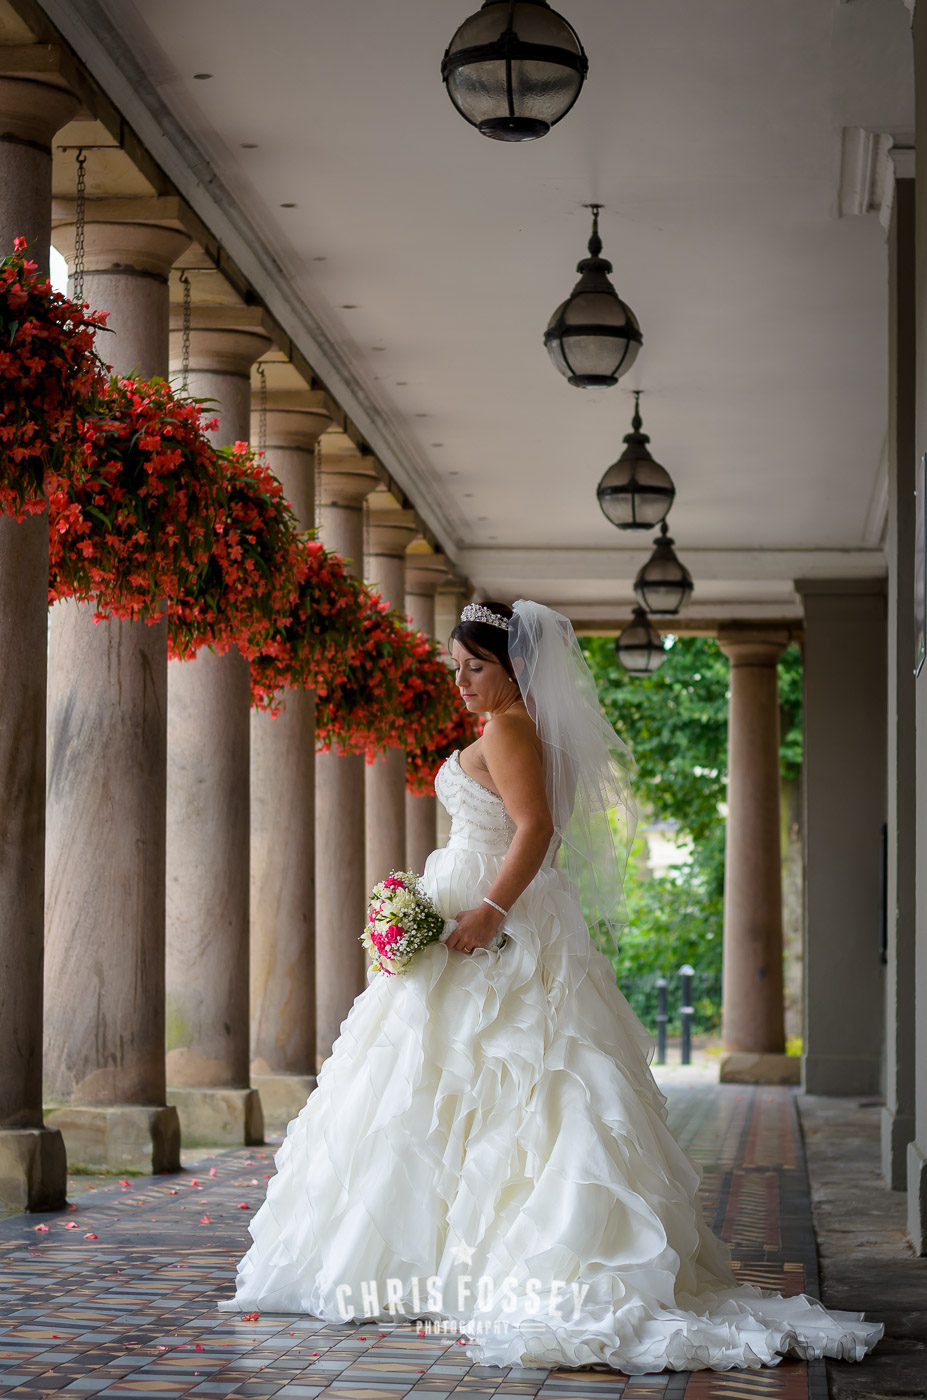 Pump Rooms Jephson Gardens Leamington Spa Wedding Photography